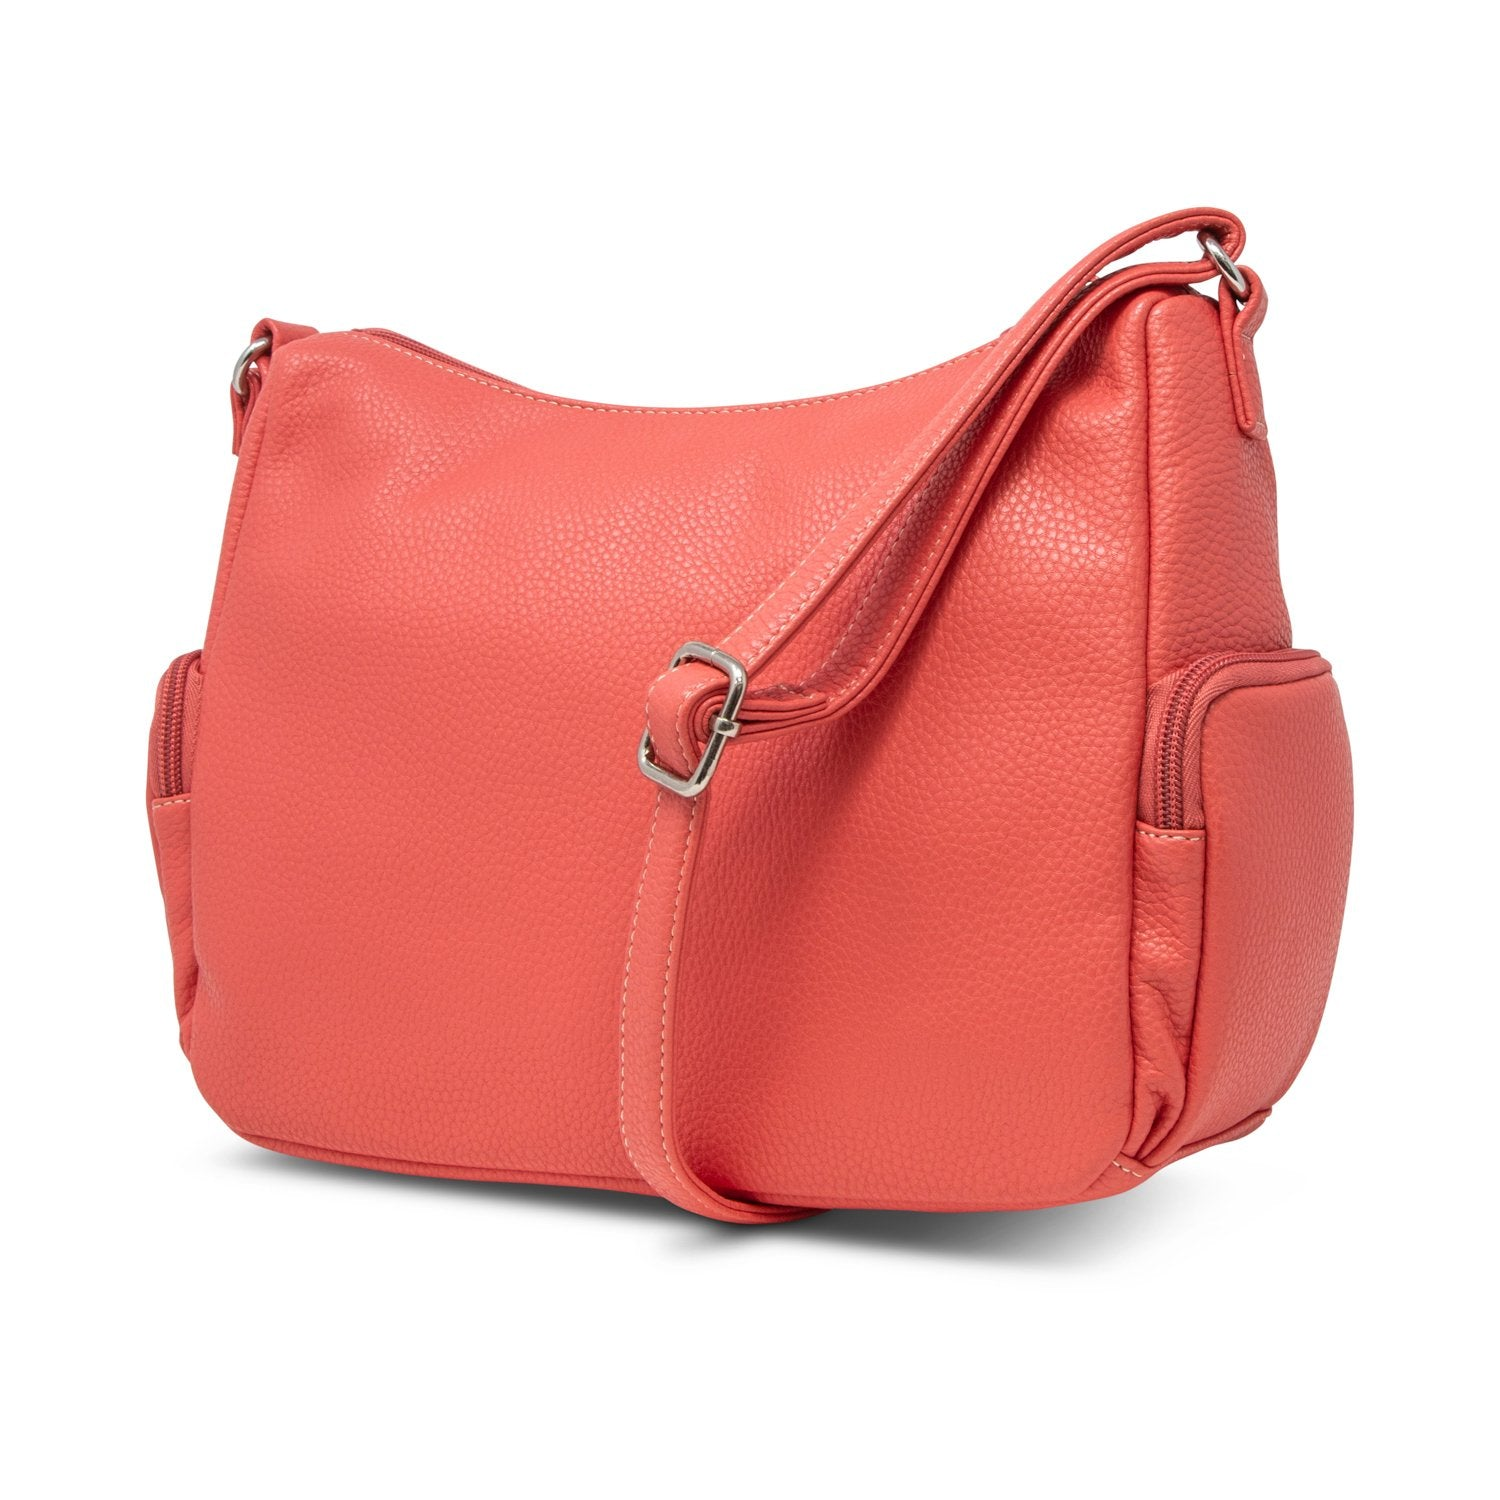 Houston Crobo - Crossbody / Hobo